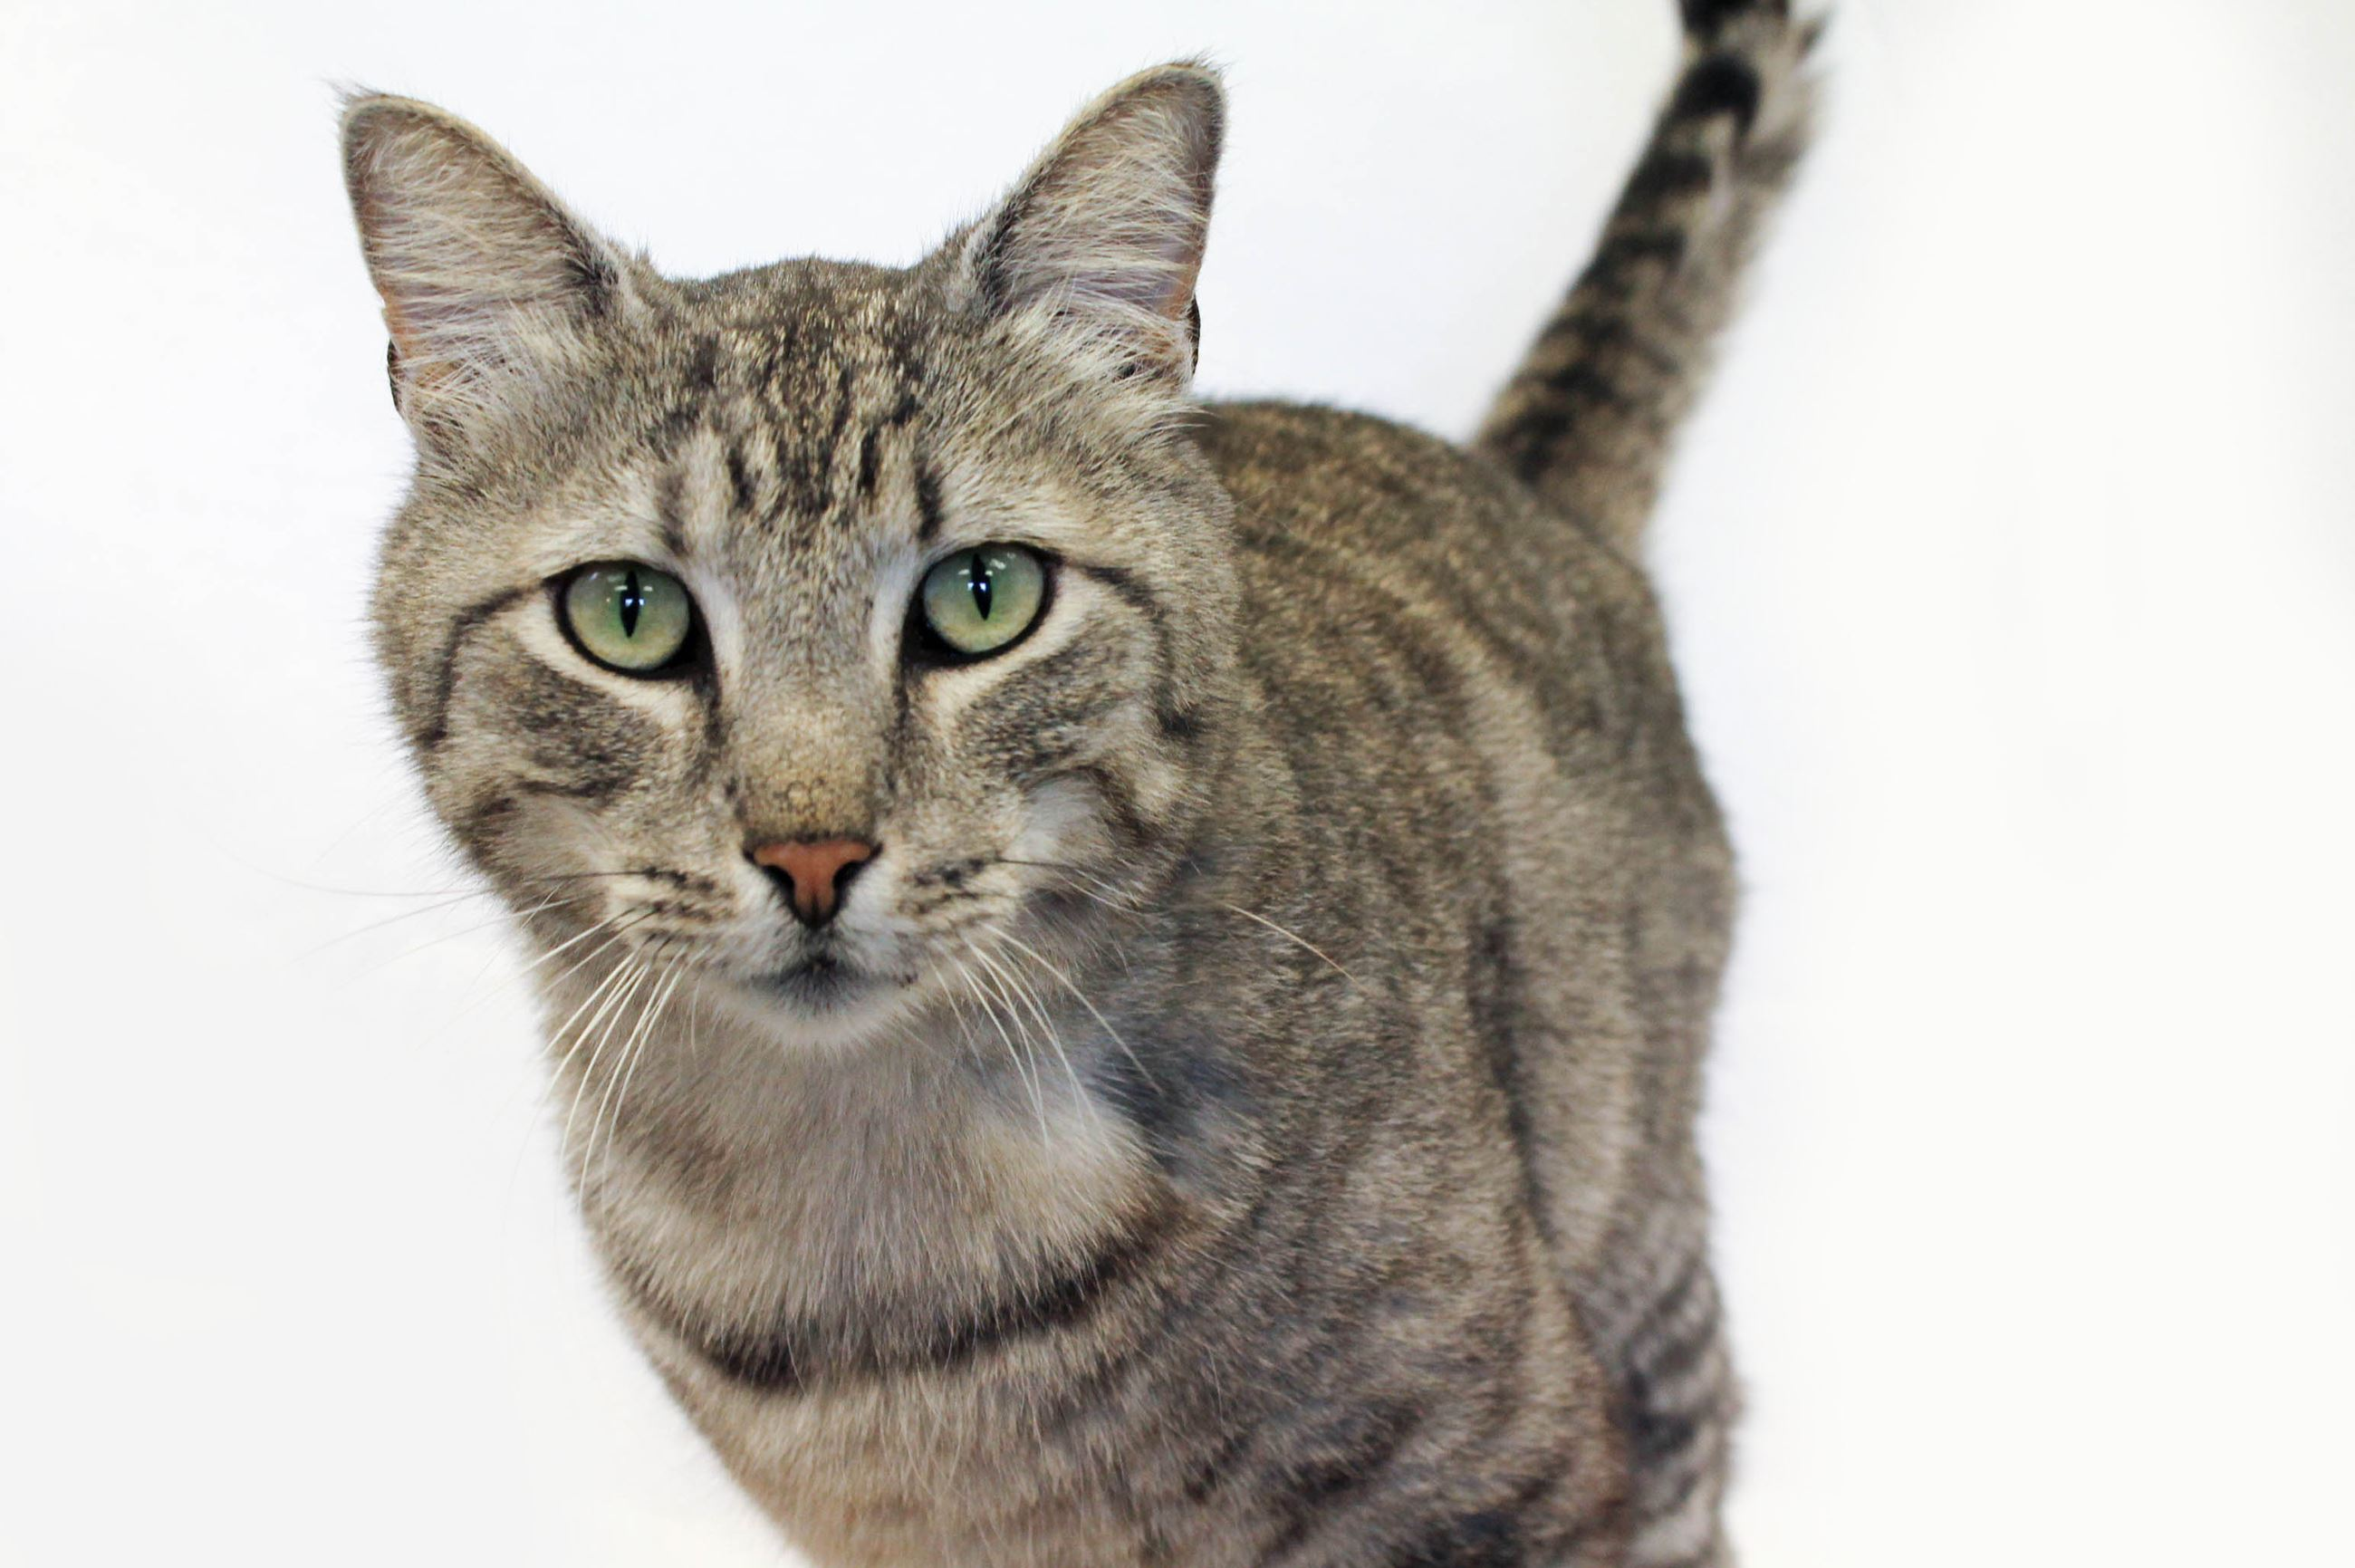 Grey Tabby Cat in front of a White Background